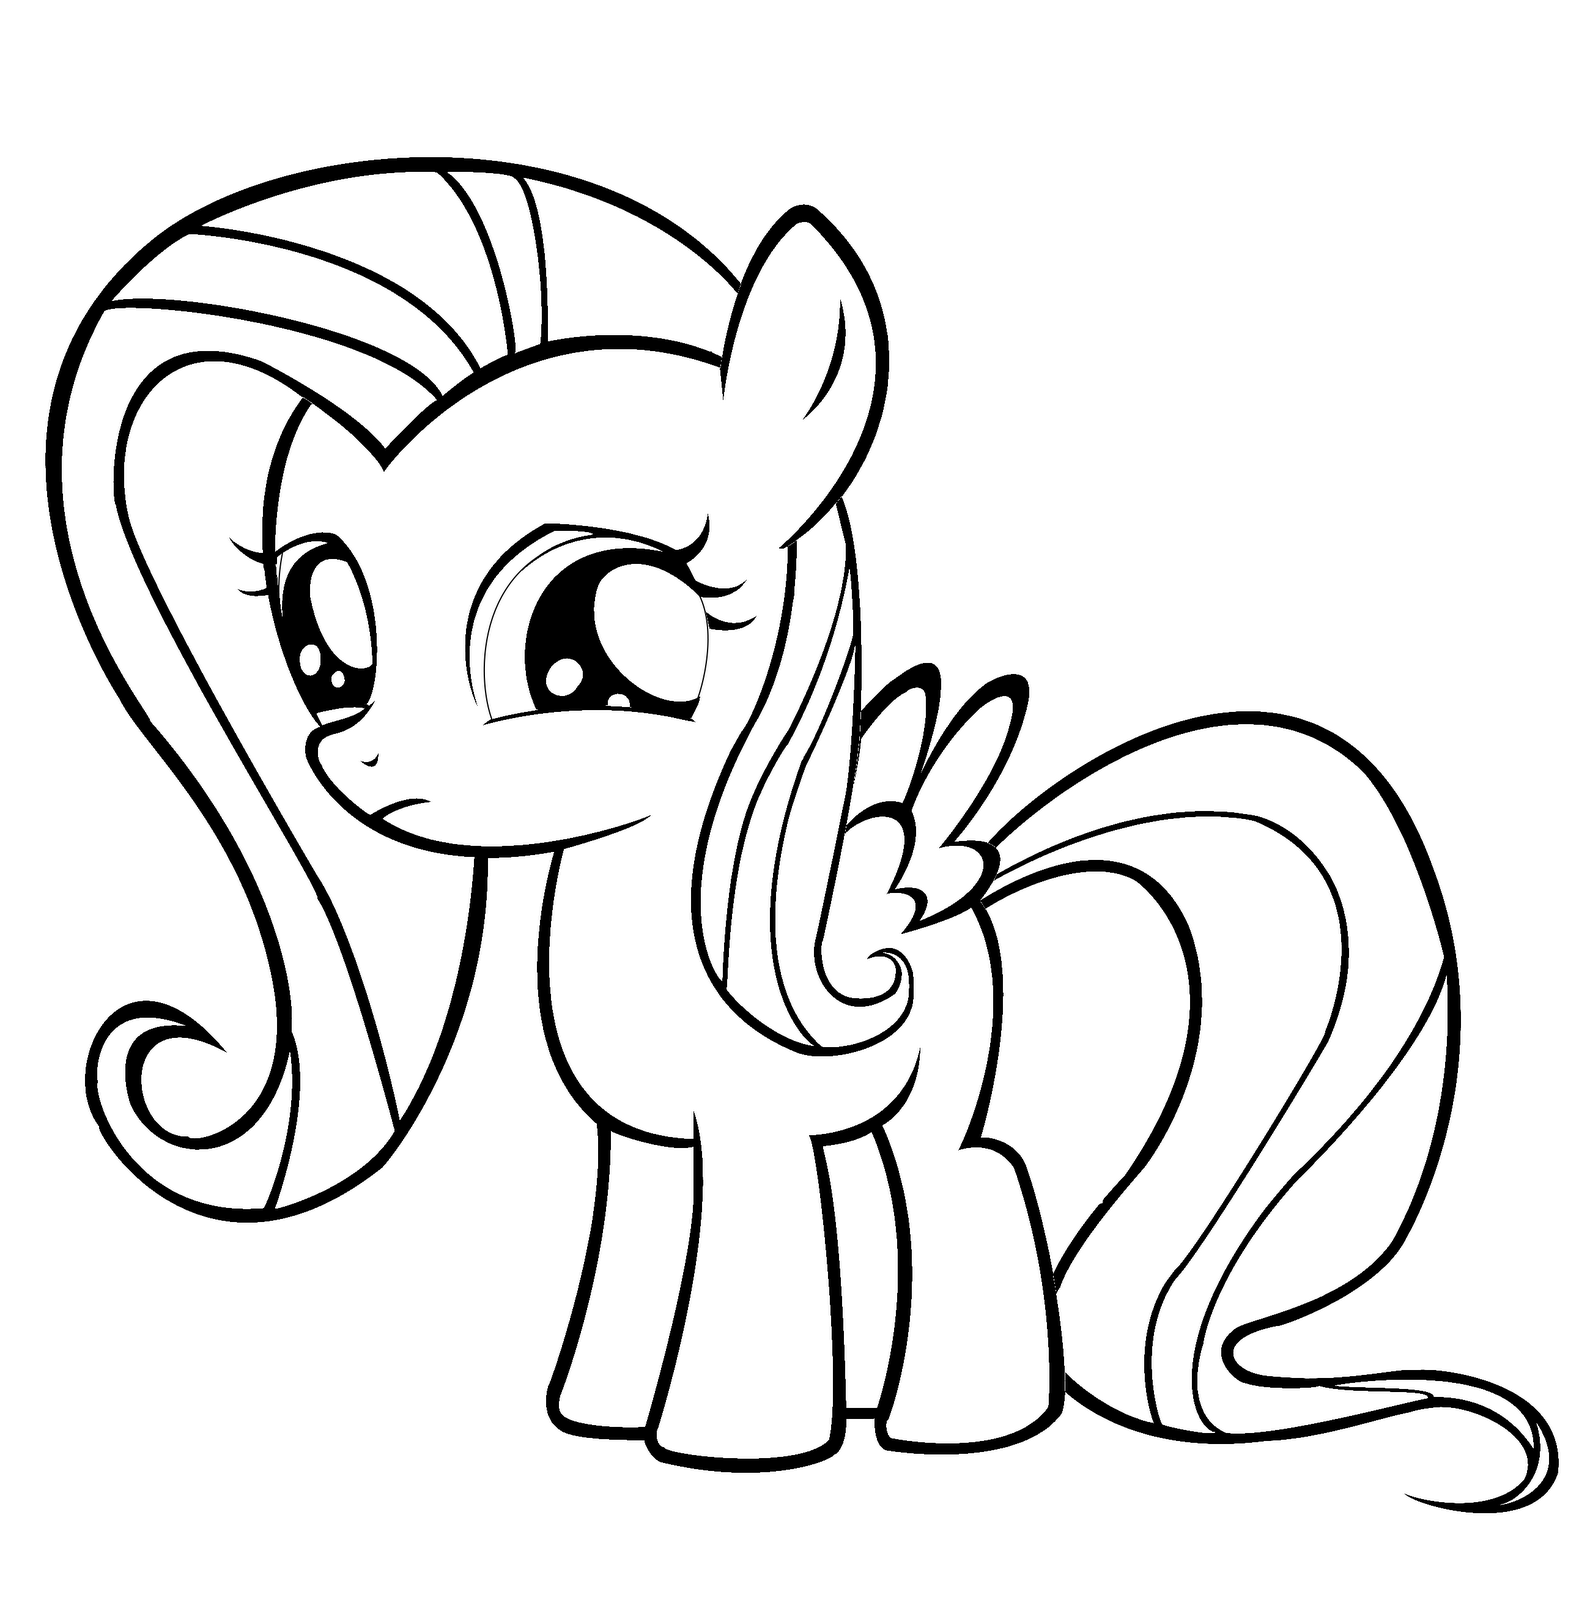 fluttershy coloring pages fluttershy coloring pages best coloring pages for kids pages fluttershy coloring